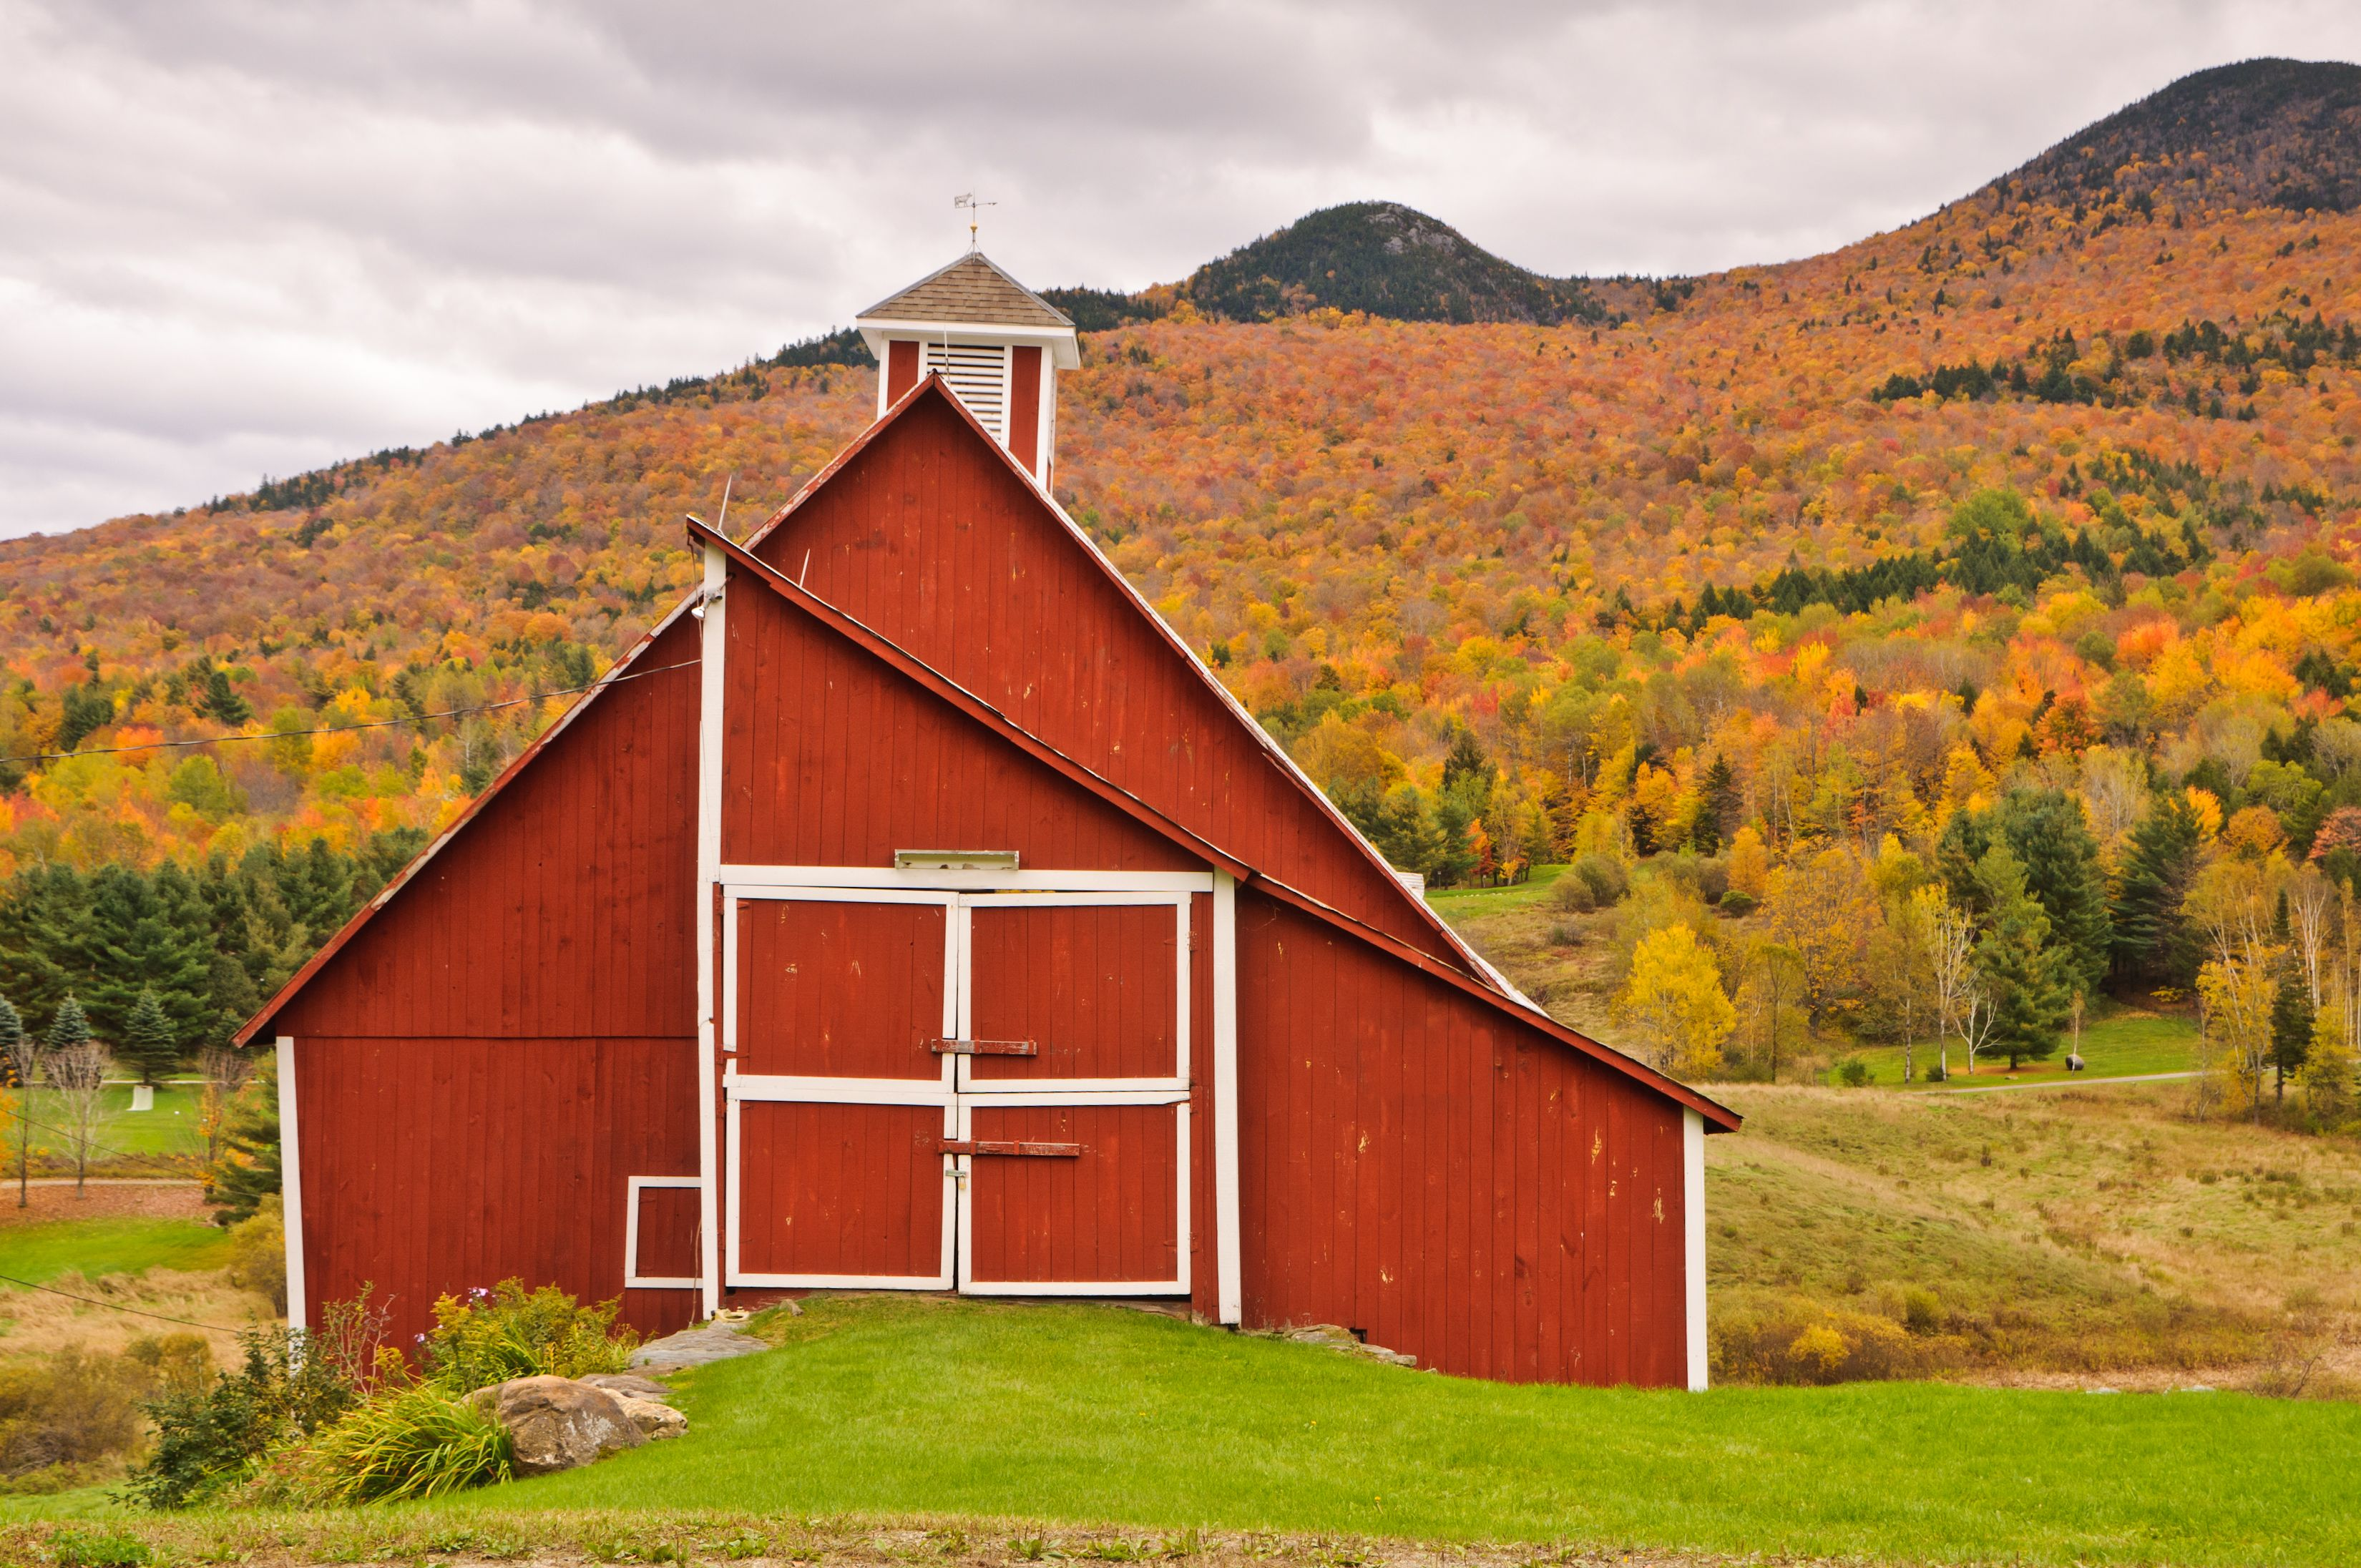 50 Best Fall Foliage Small Towns In America Leaf Peeping Destinations,Barefoot Contessa Pioneer Woman Meatloaf Recipe